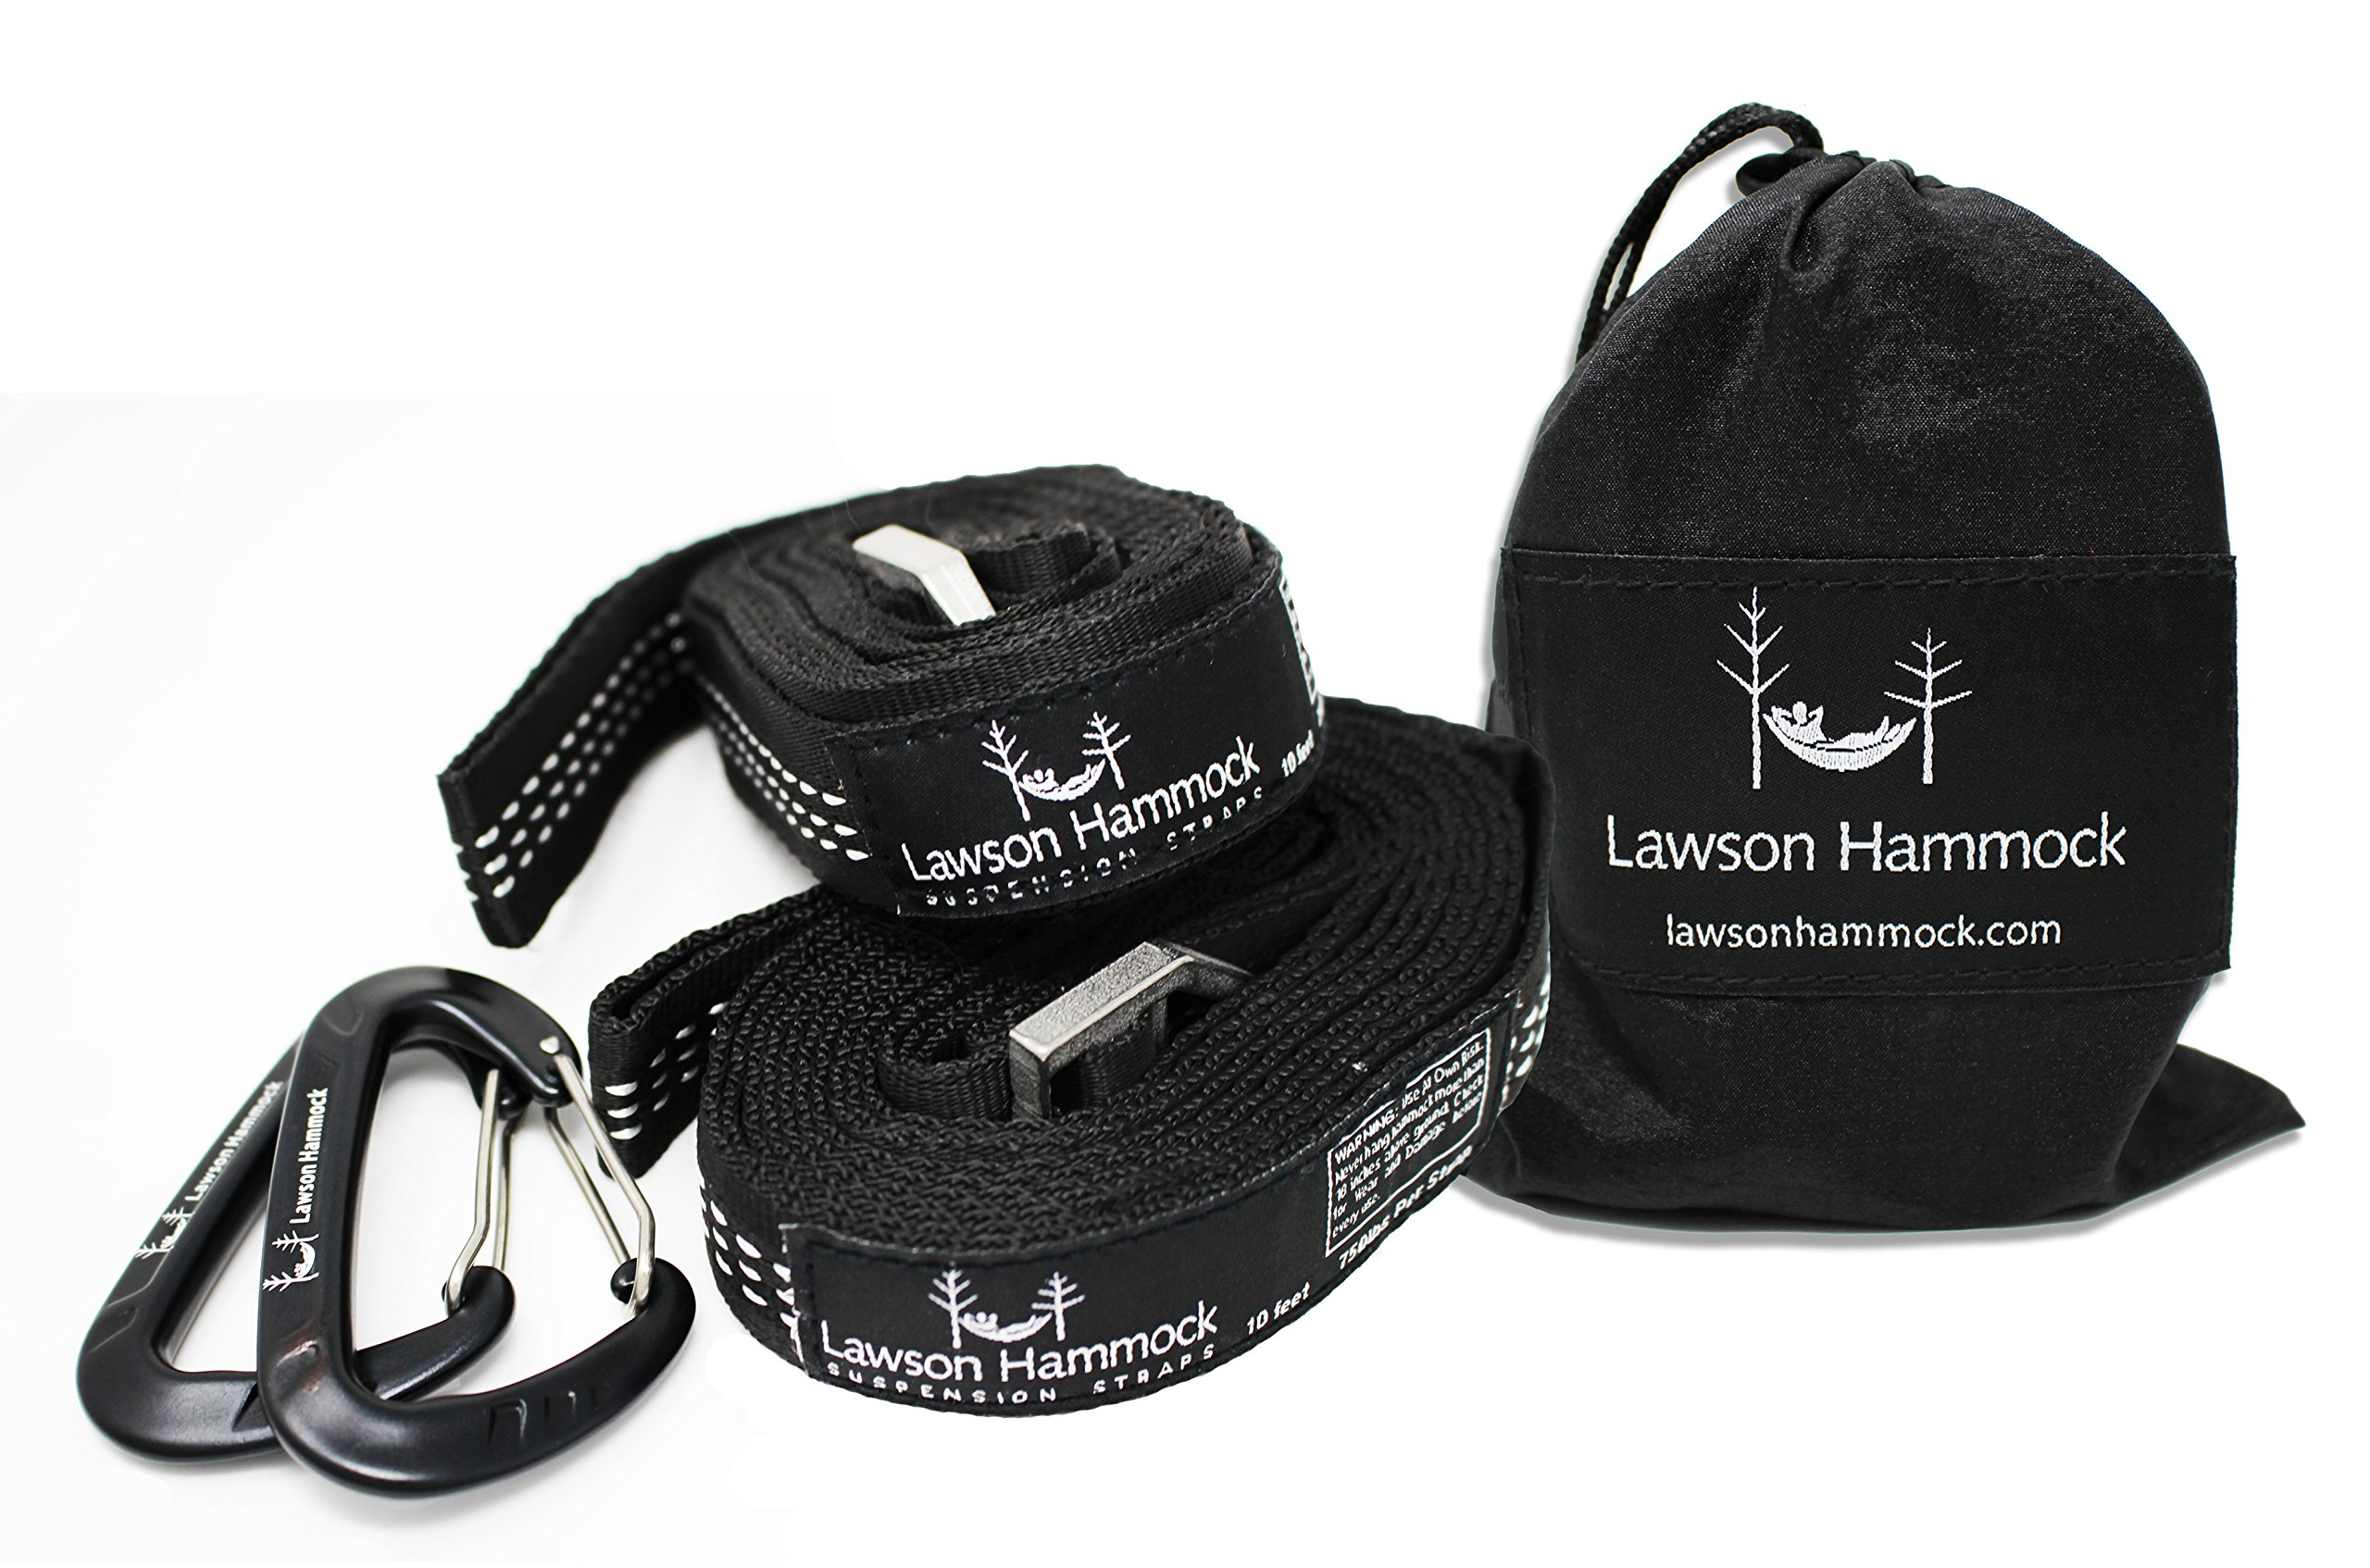 Lawson Hammock Straps for Blue Ridge Camping Hammock Suspension System by Lawson Hammock